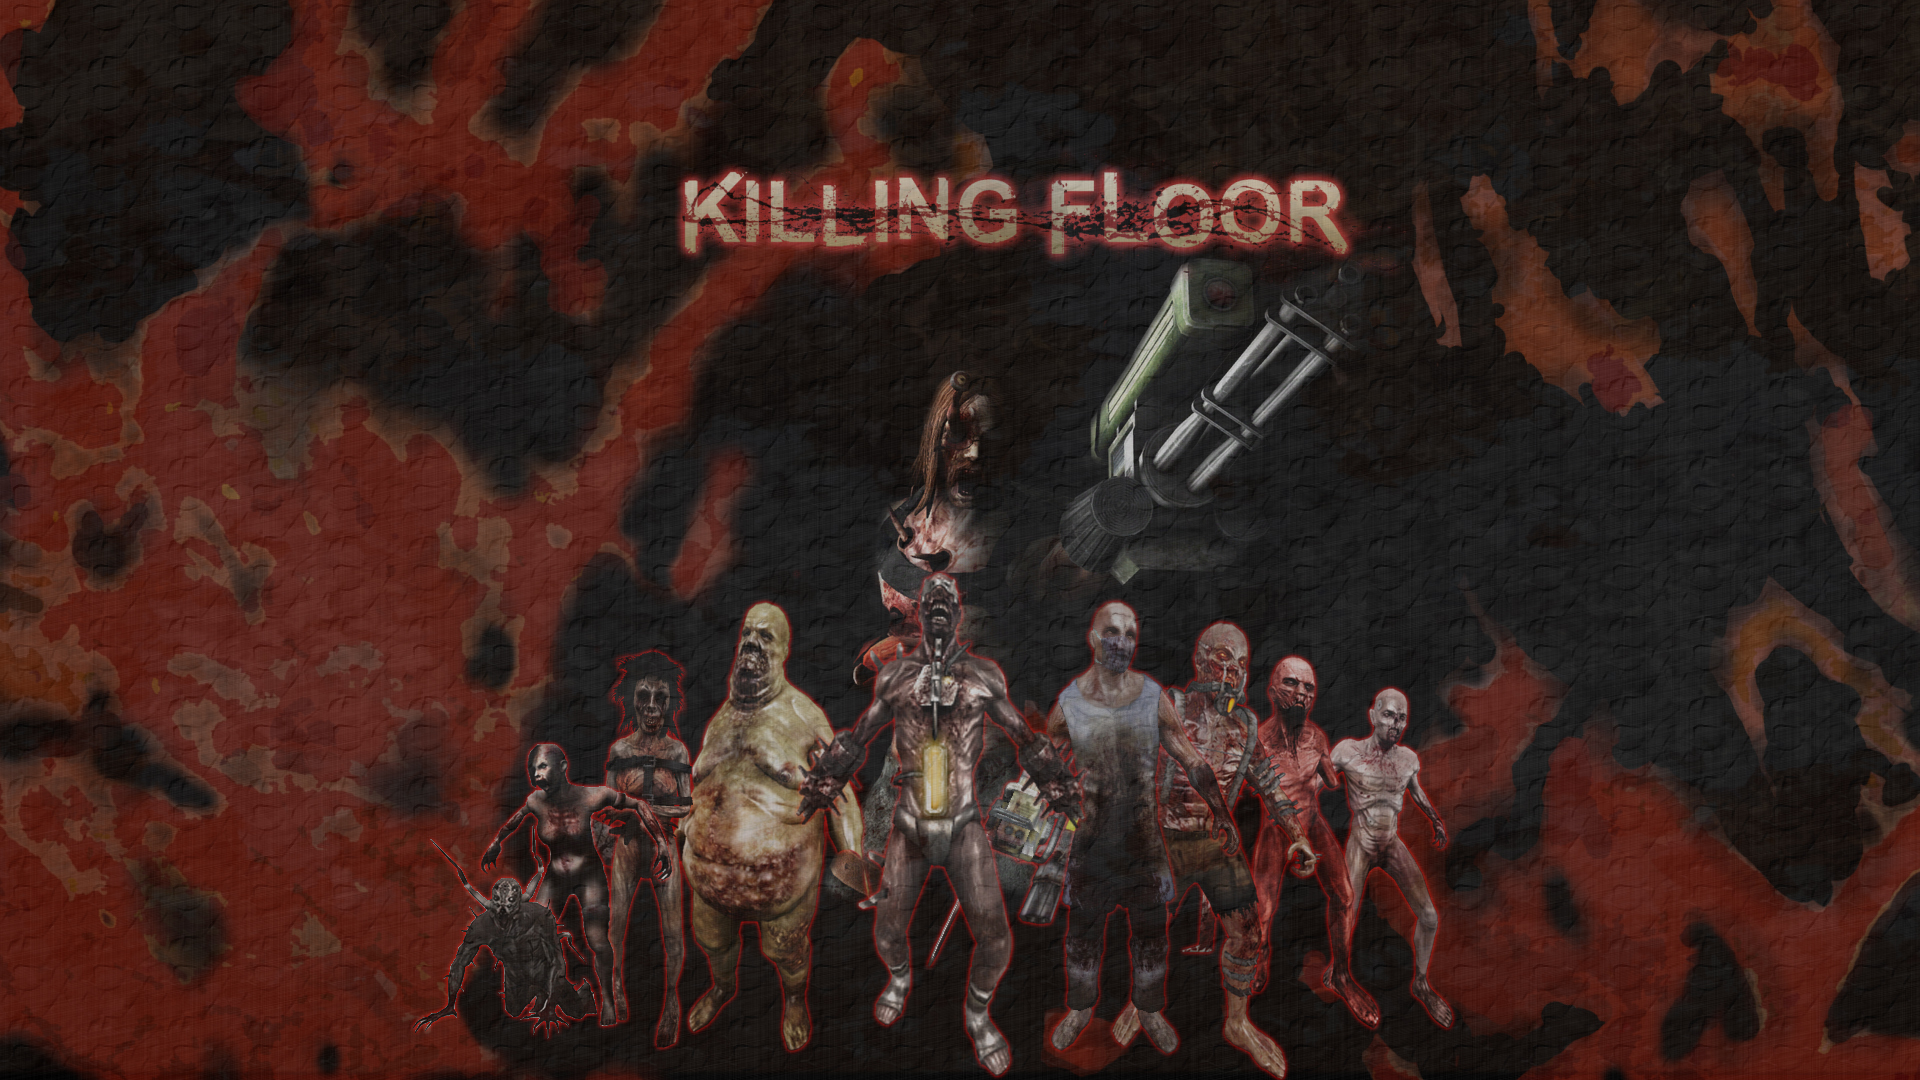 Killing Floor Specimens Wallpaper By DremoraValkynaz On